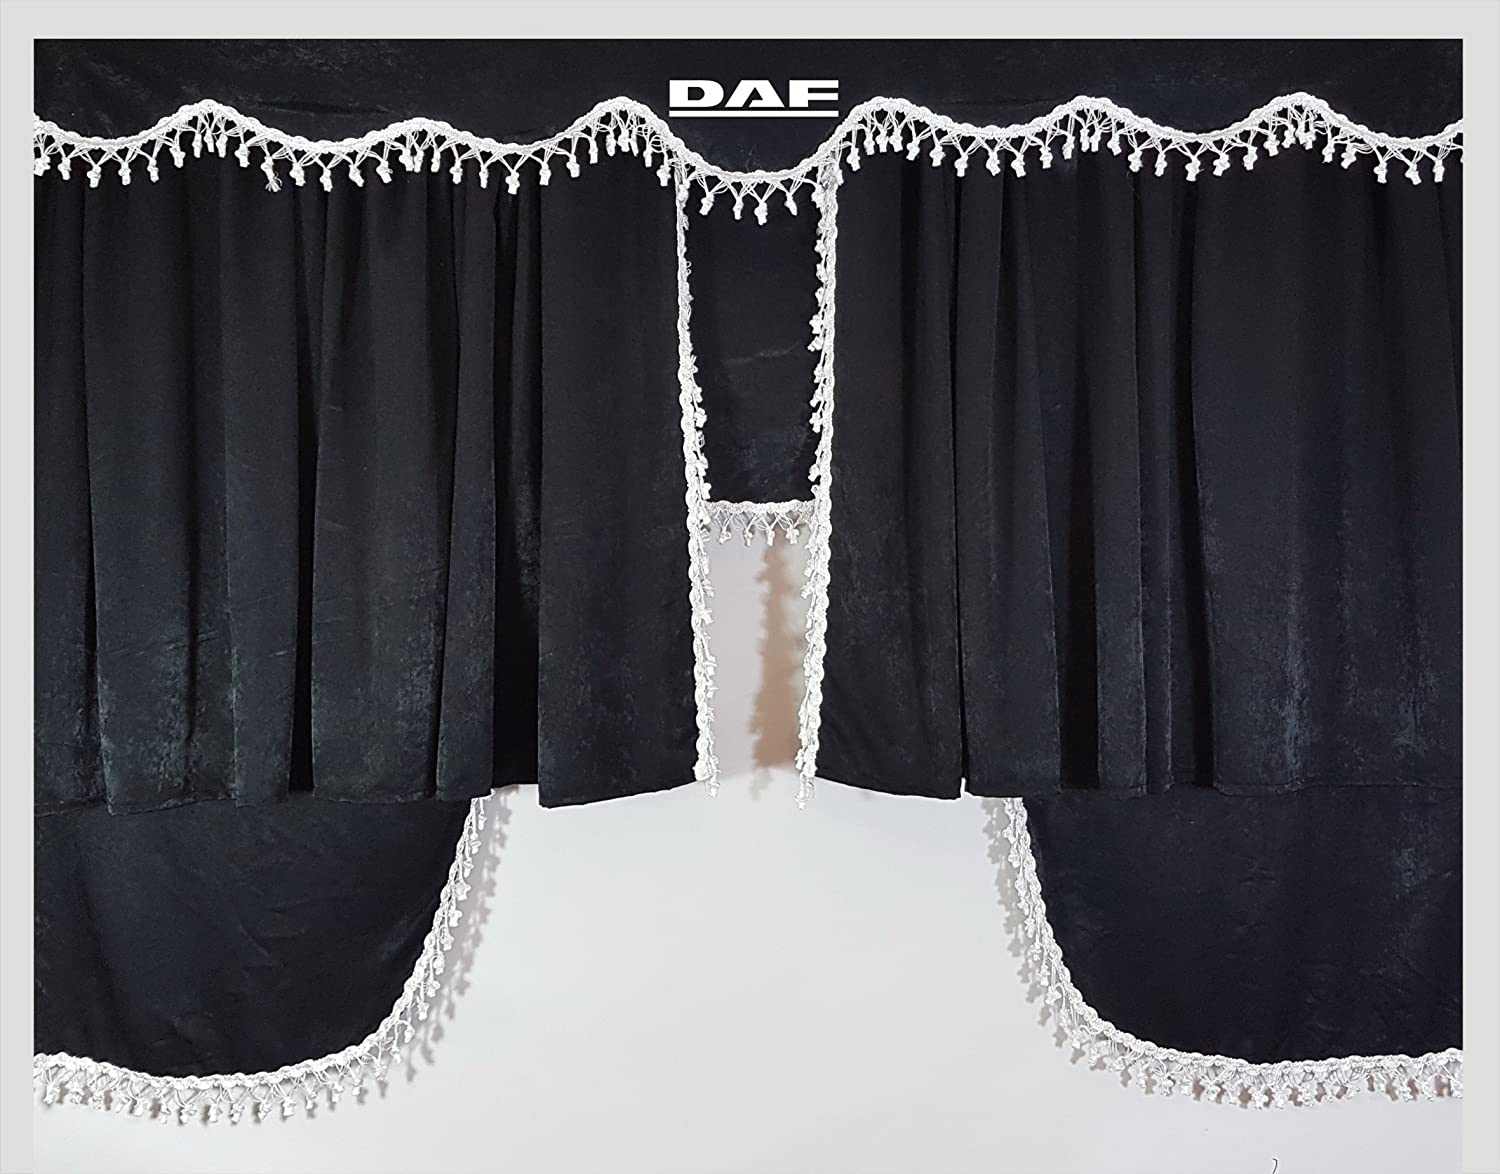 Set of 3 Grey Curtains with White Tassels UNIVERSAL SIZE Truck All Models Accessories Decoration Plush Fabric